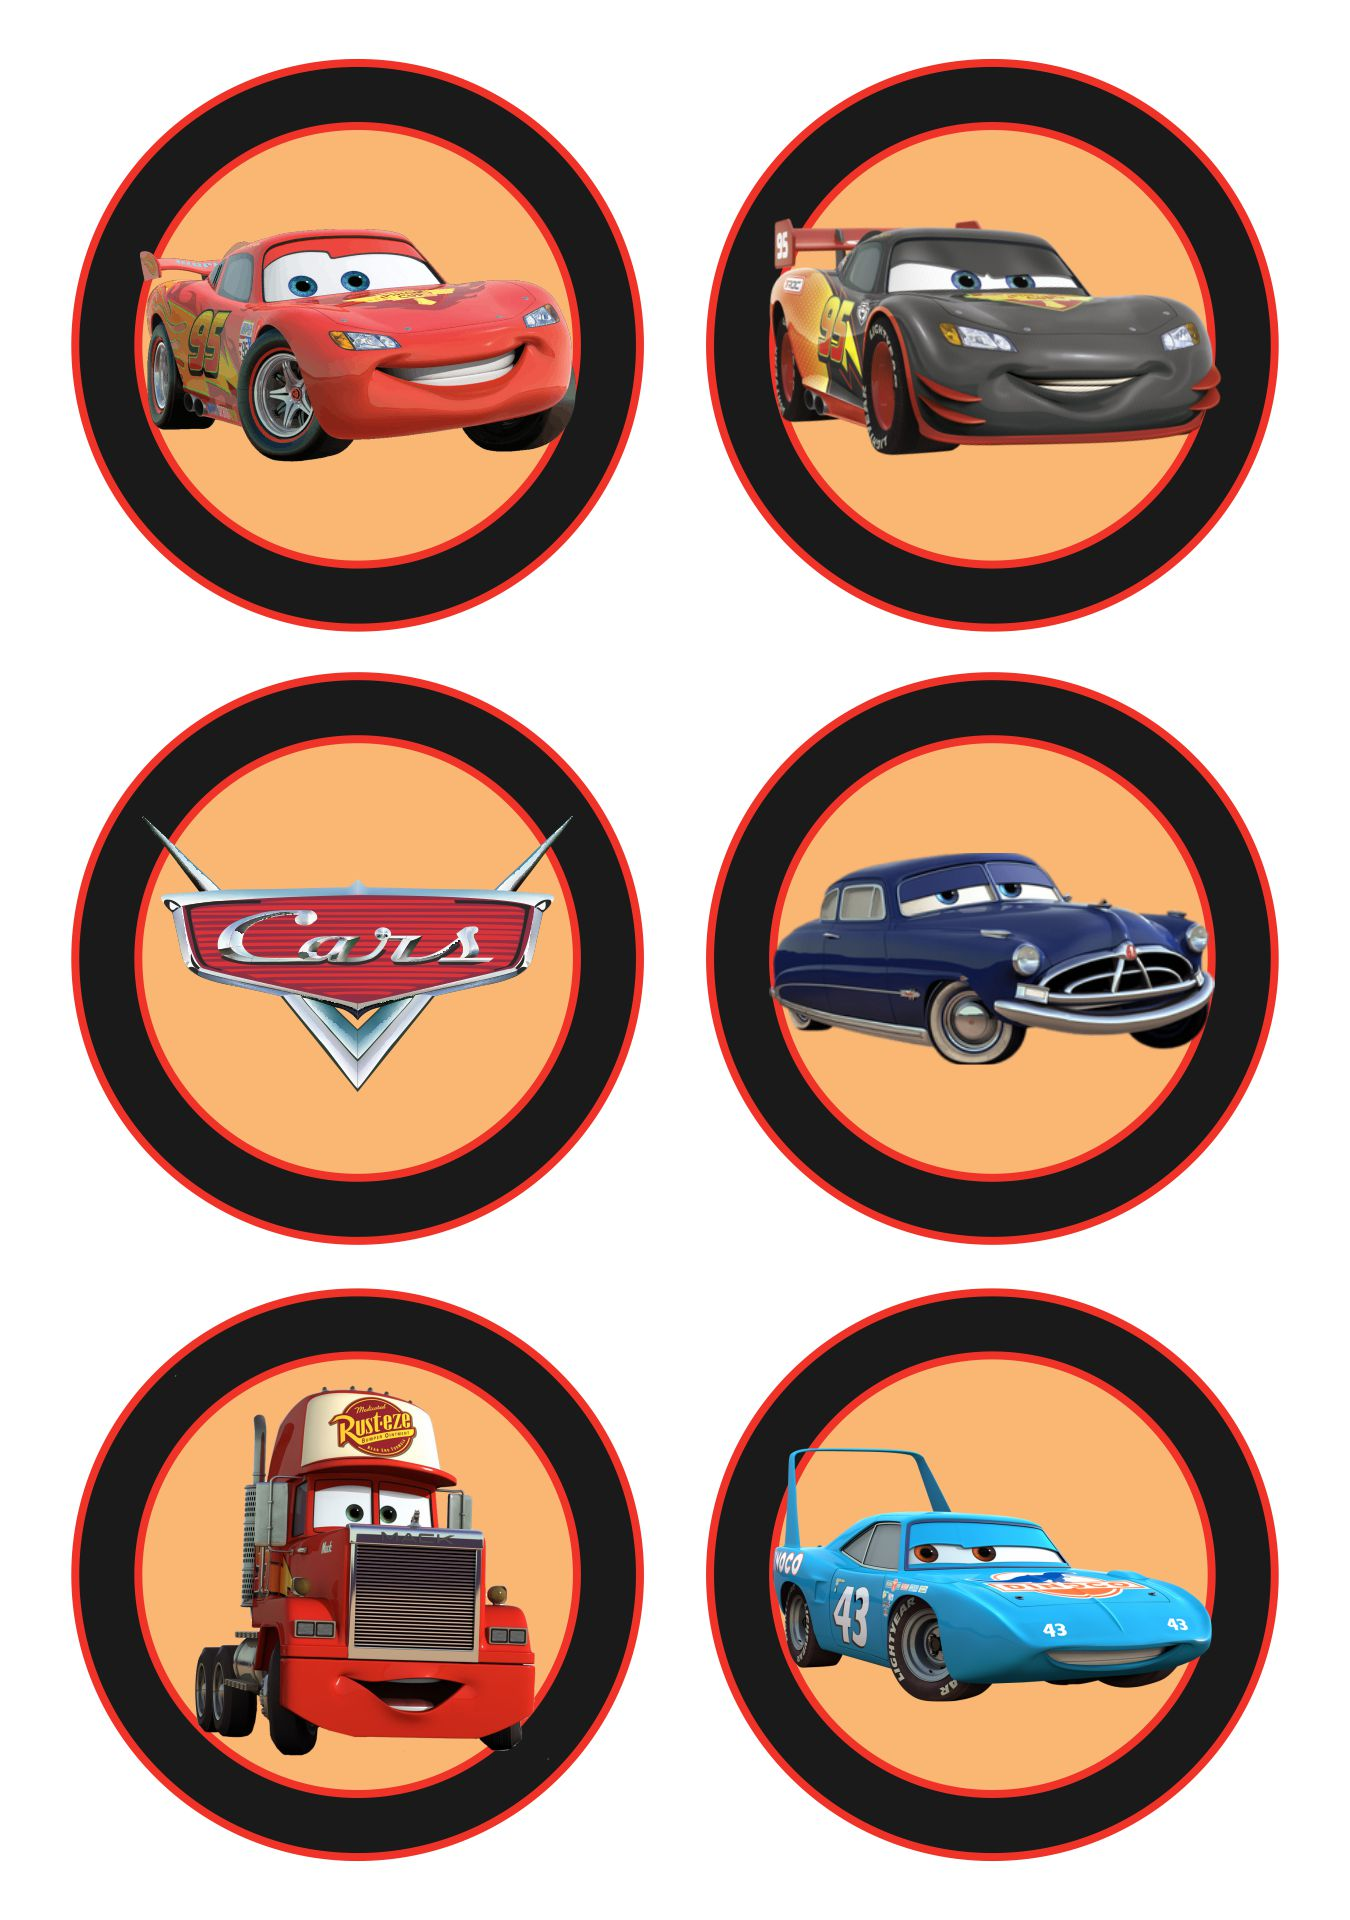 Disney Pixar Cars Cupcake Toppers